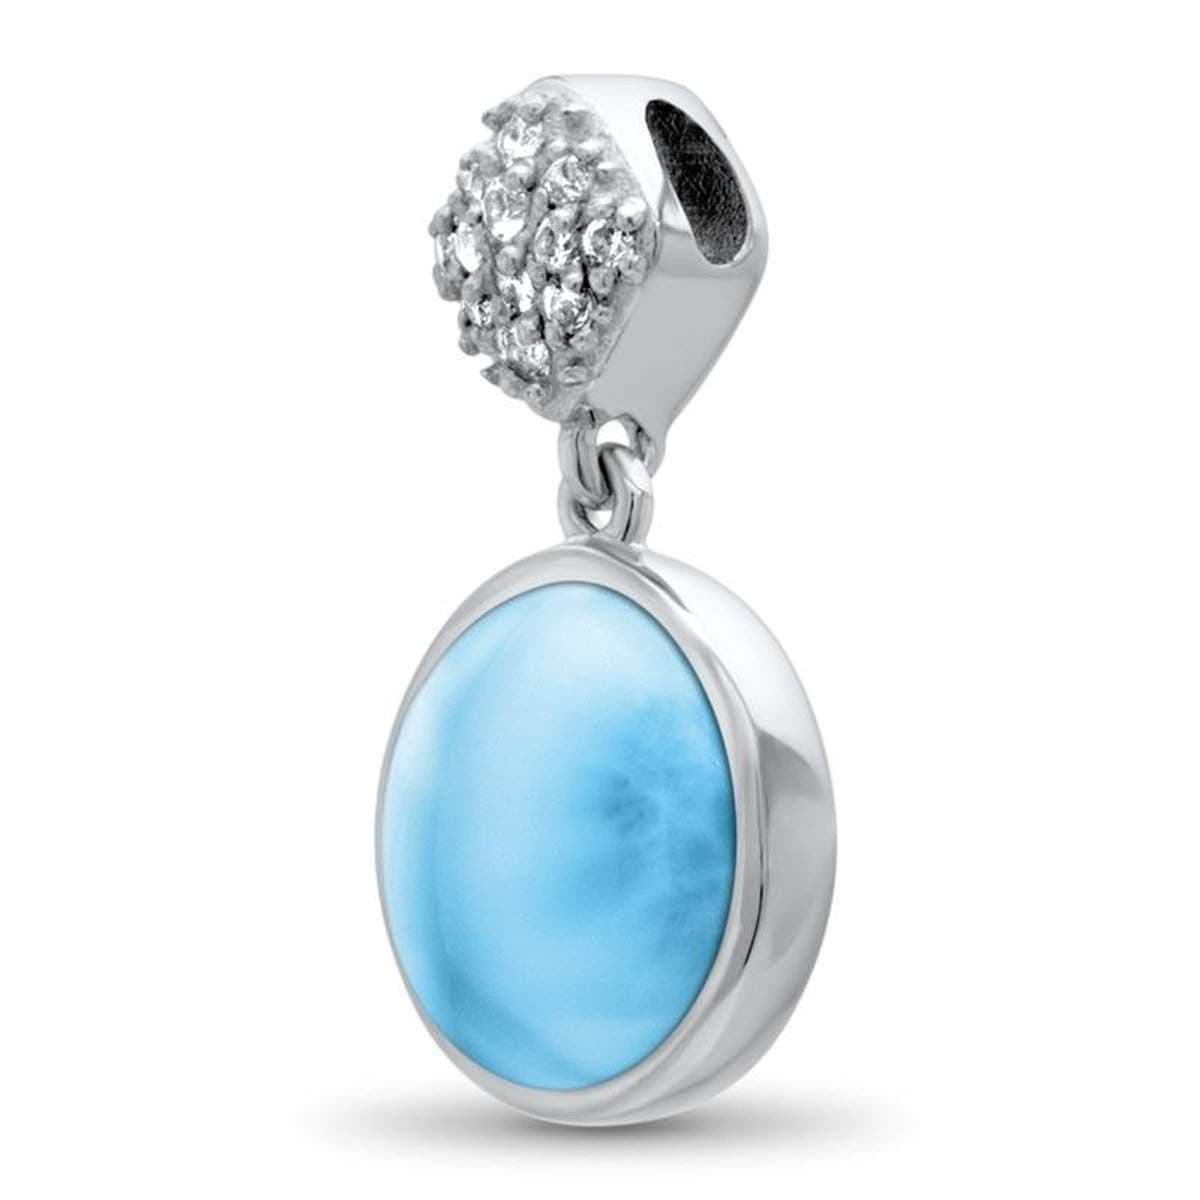 Bliss Round Necklace - Nblis00-00-Marahlago Larimar-Renee Taylor Gallery